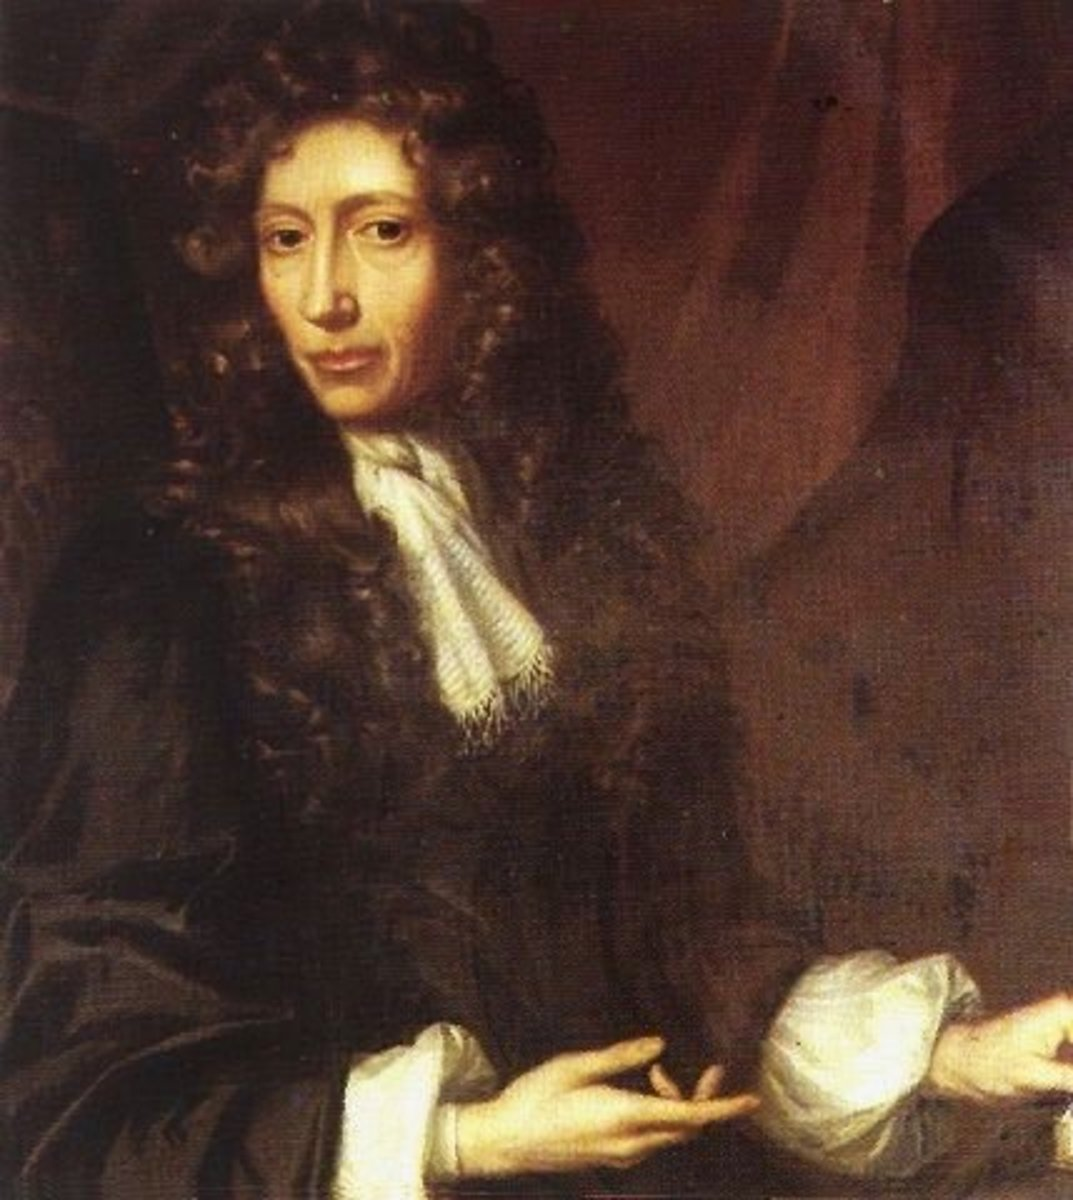 Portrait of Robert Boyle.